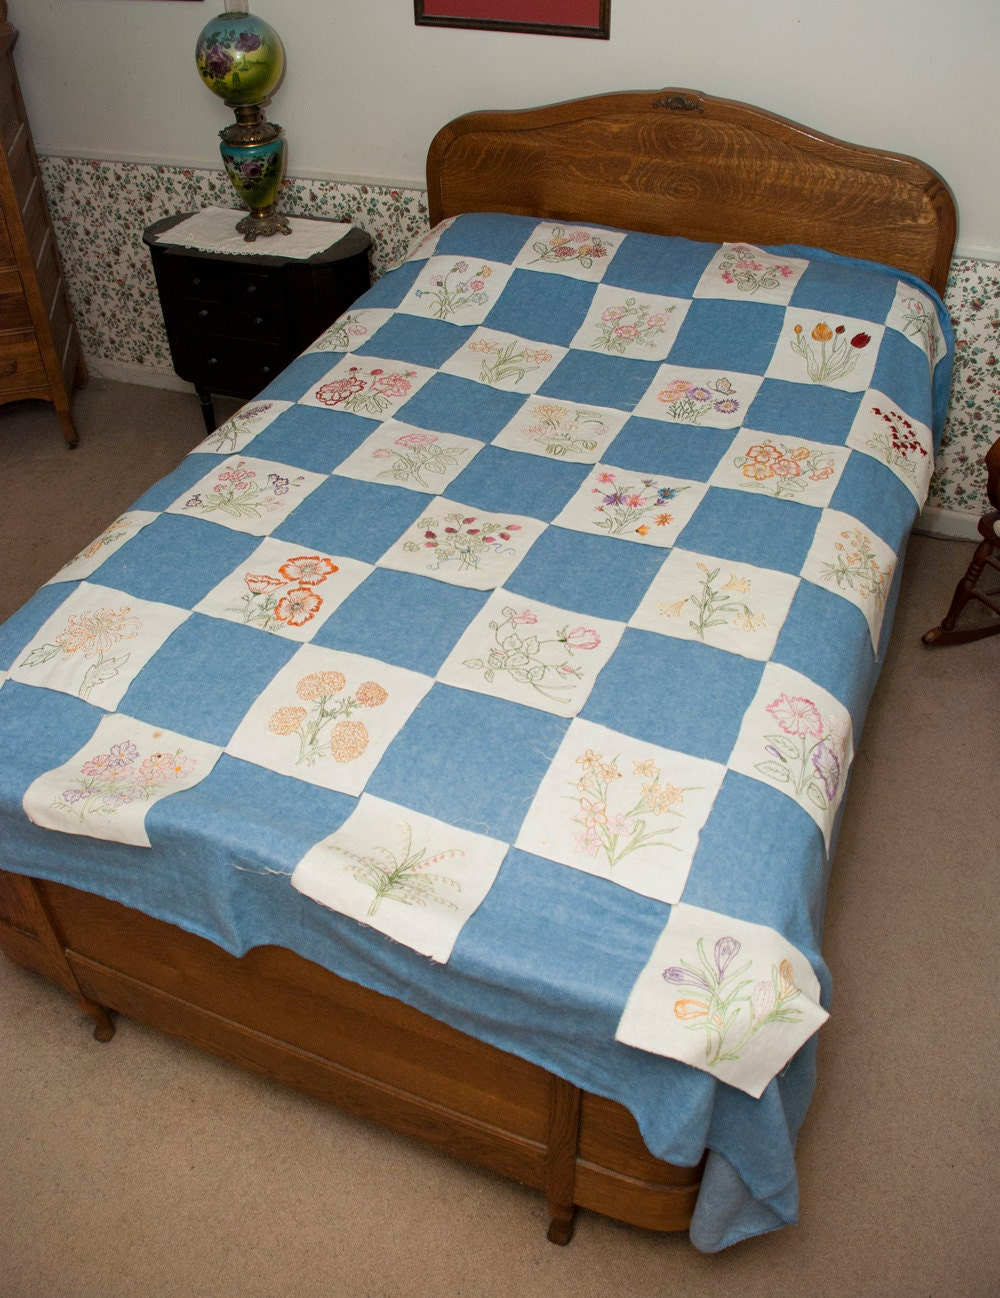 Vintage Embroidery Quilt Kit 32 Hand Embroidered Blocks